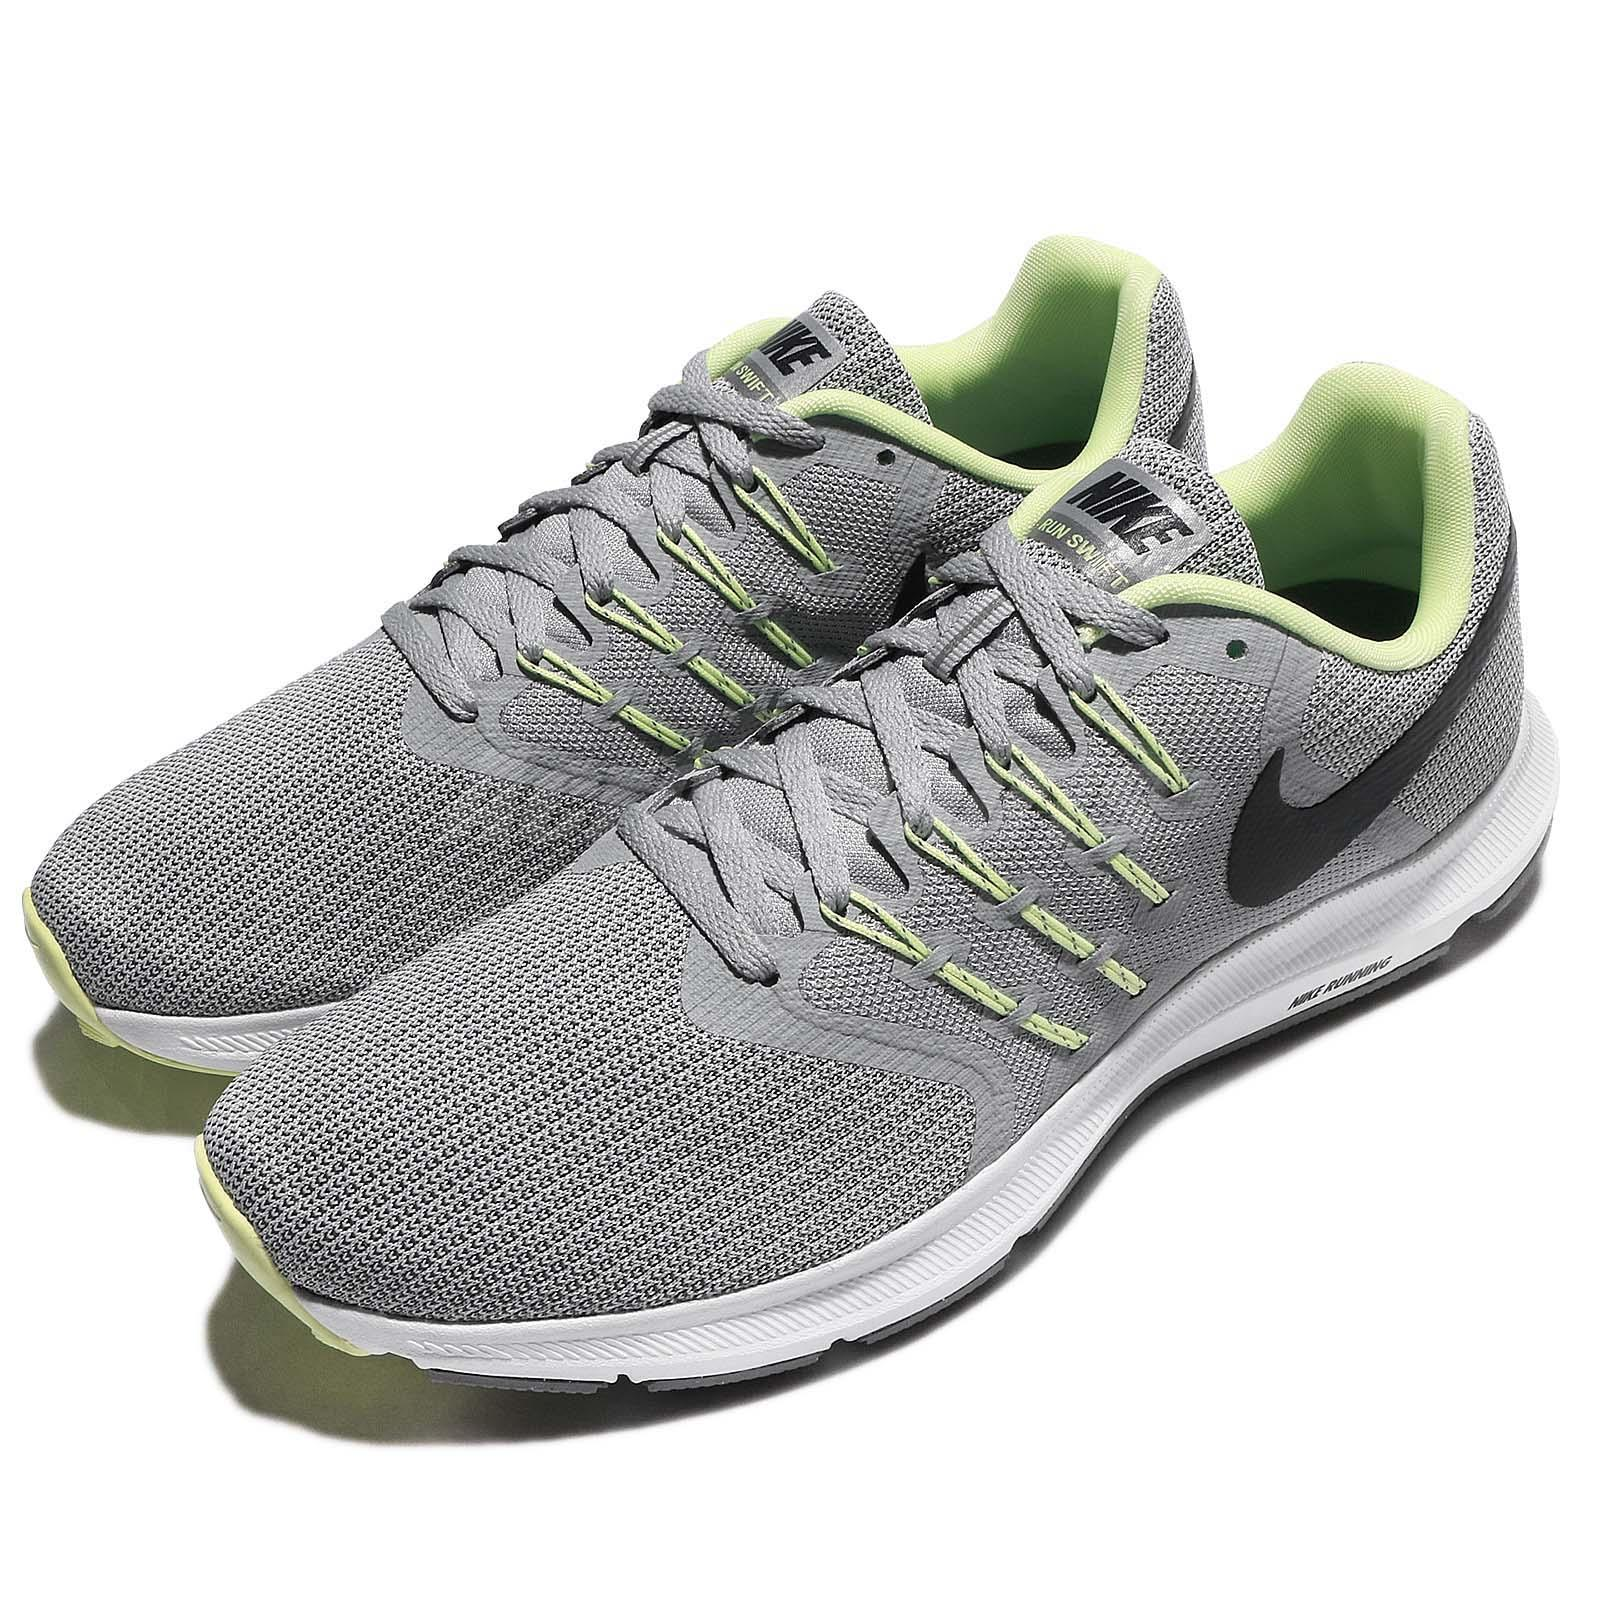 b9e382ea9048b Details about Nike Run Swift Wolf Grey Dark Obsidian Men Running Shoes  Sneakers 908989-008